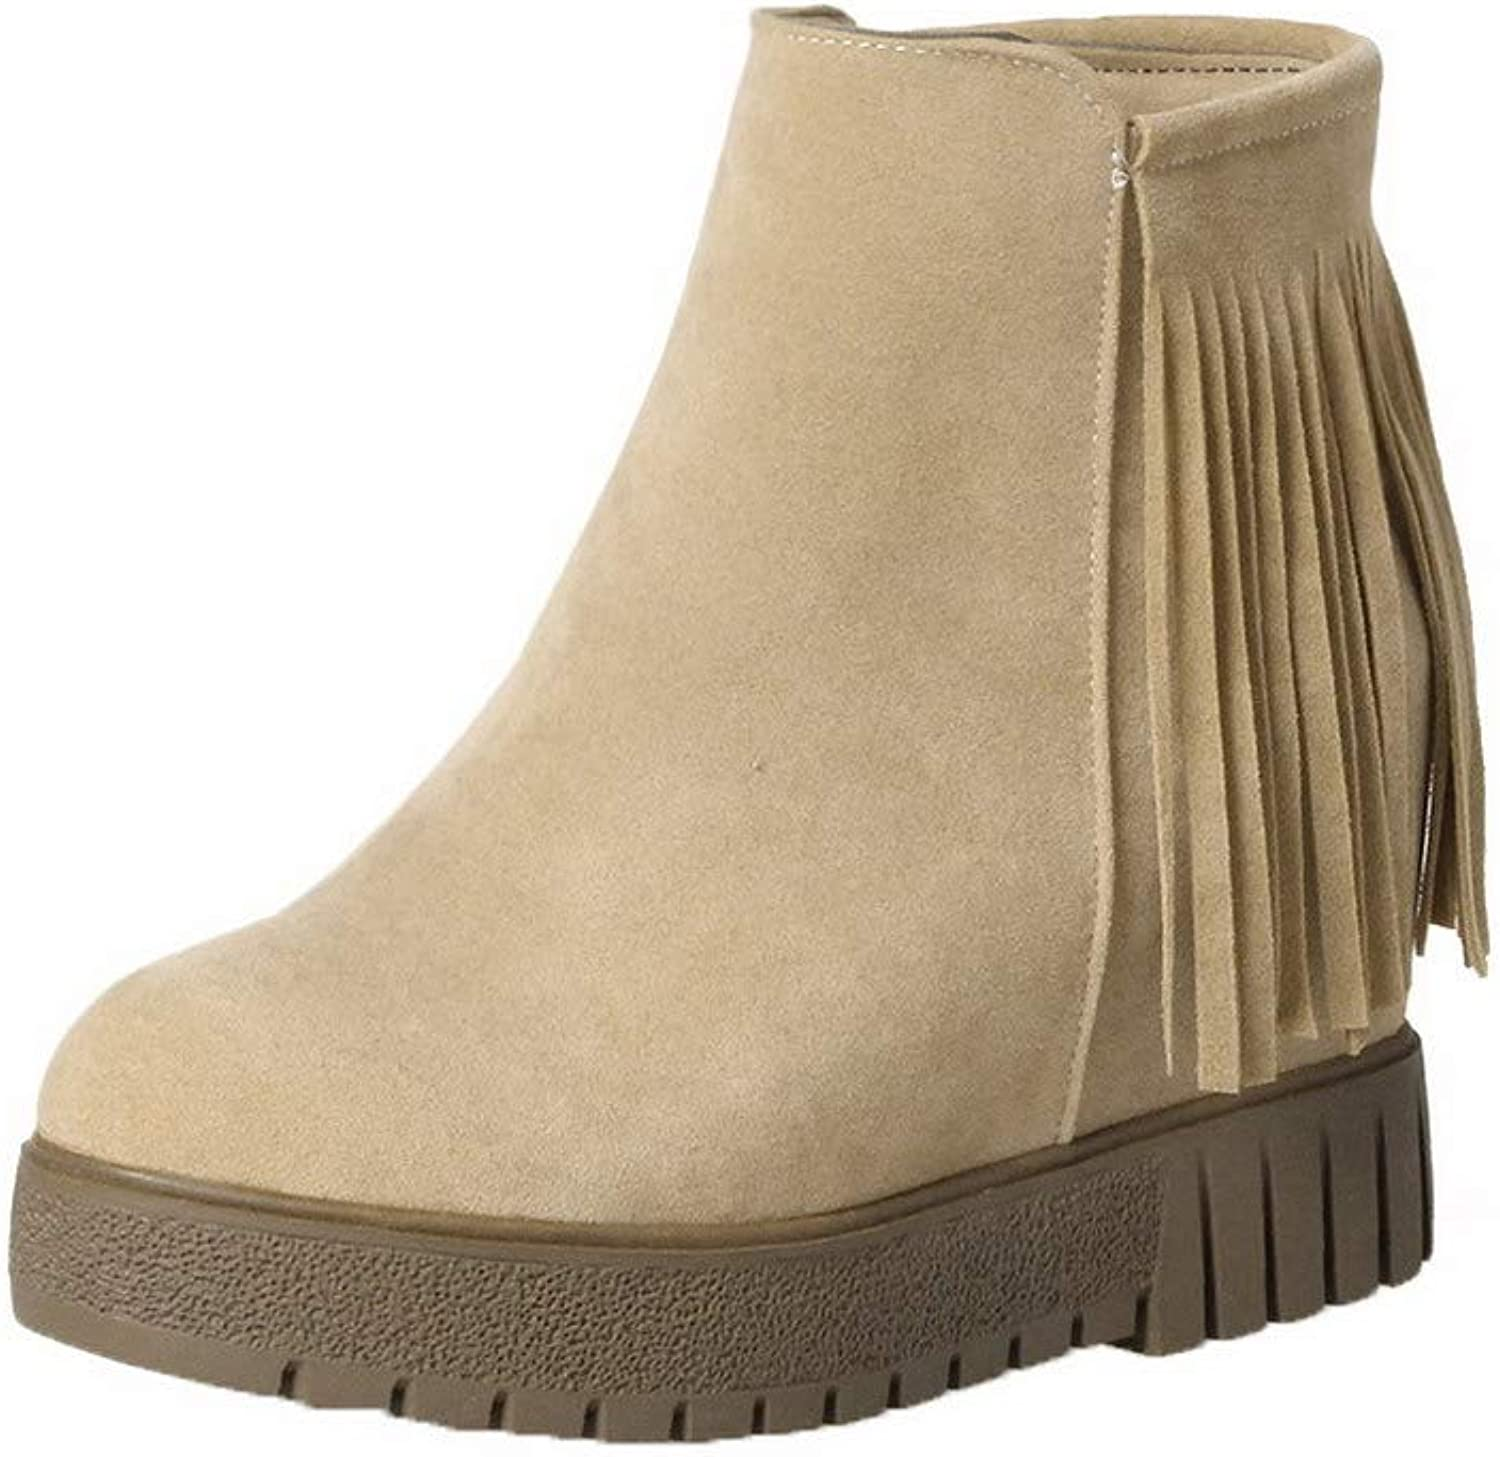 WeenFashion Women's Solid Frosted High-Heels Zipper Round-Toe Boots, AMGXX113226